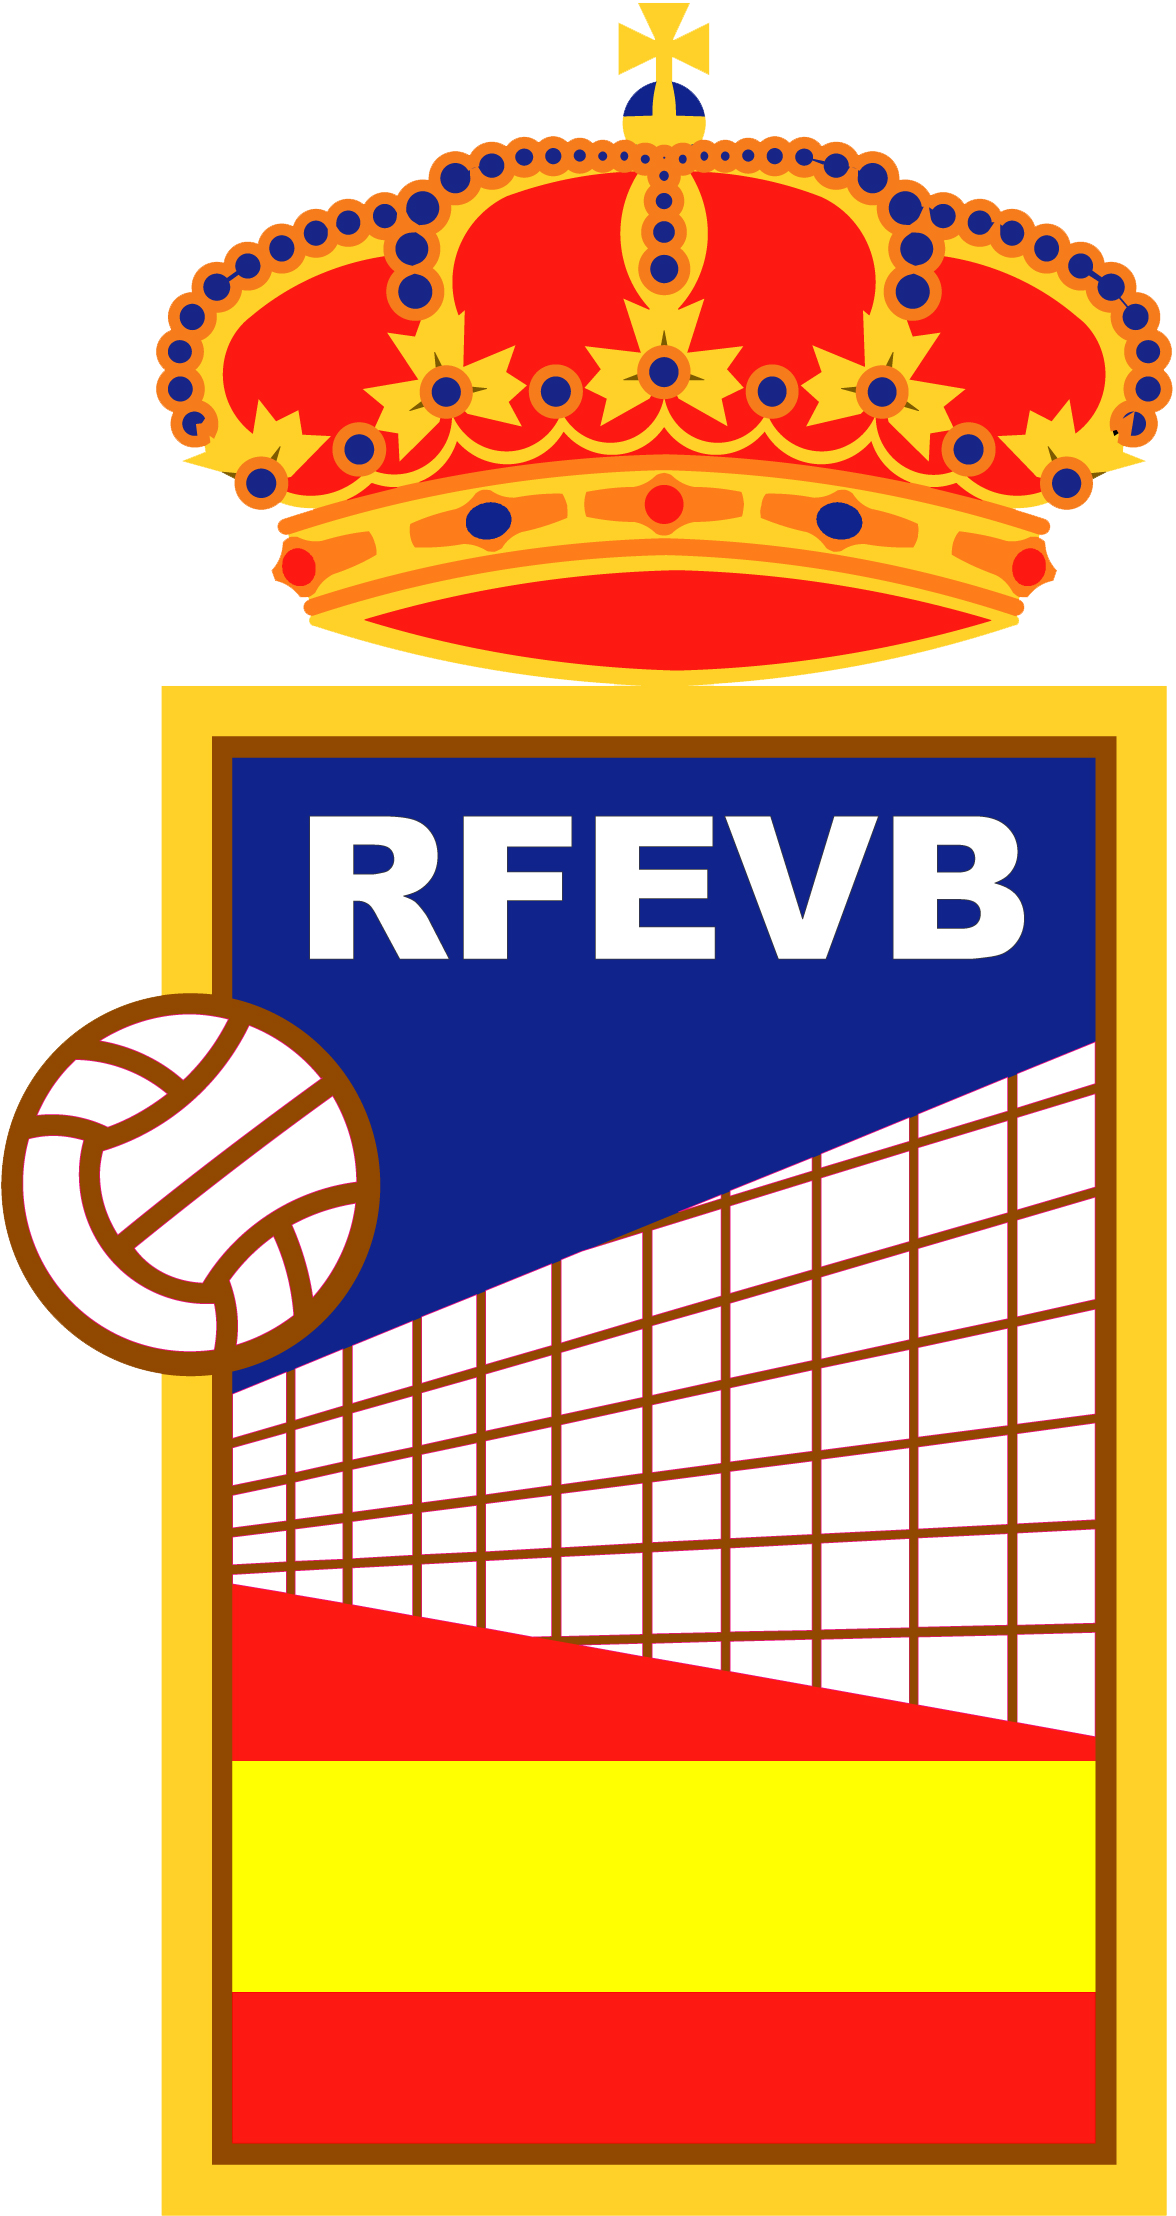 SPAIN - RFEVB<br/>Beach Volley